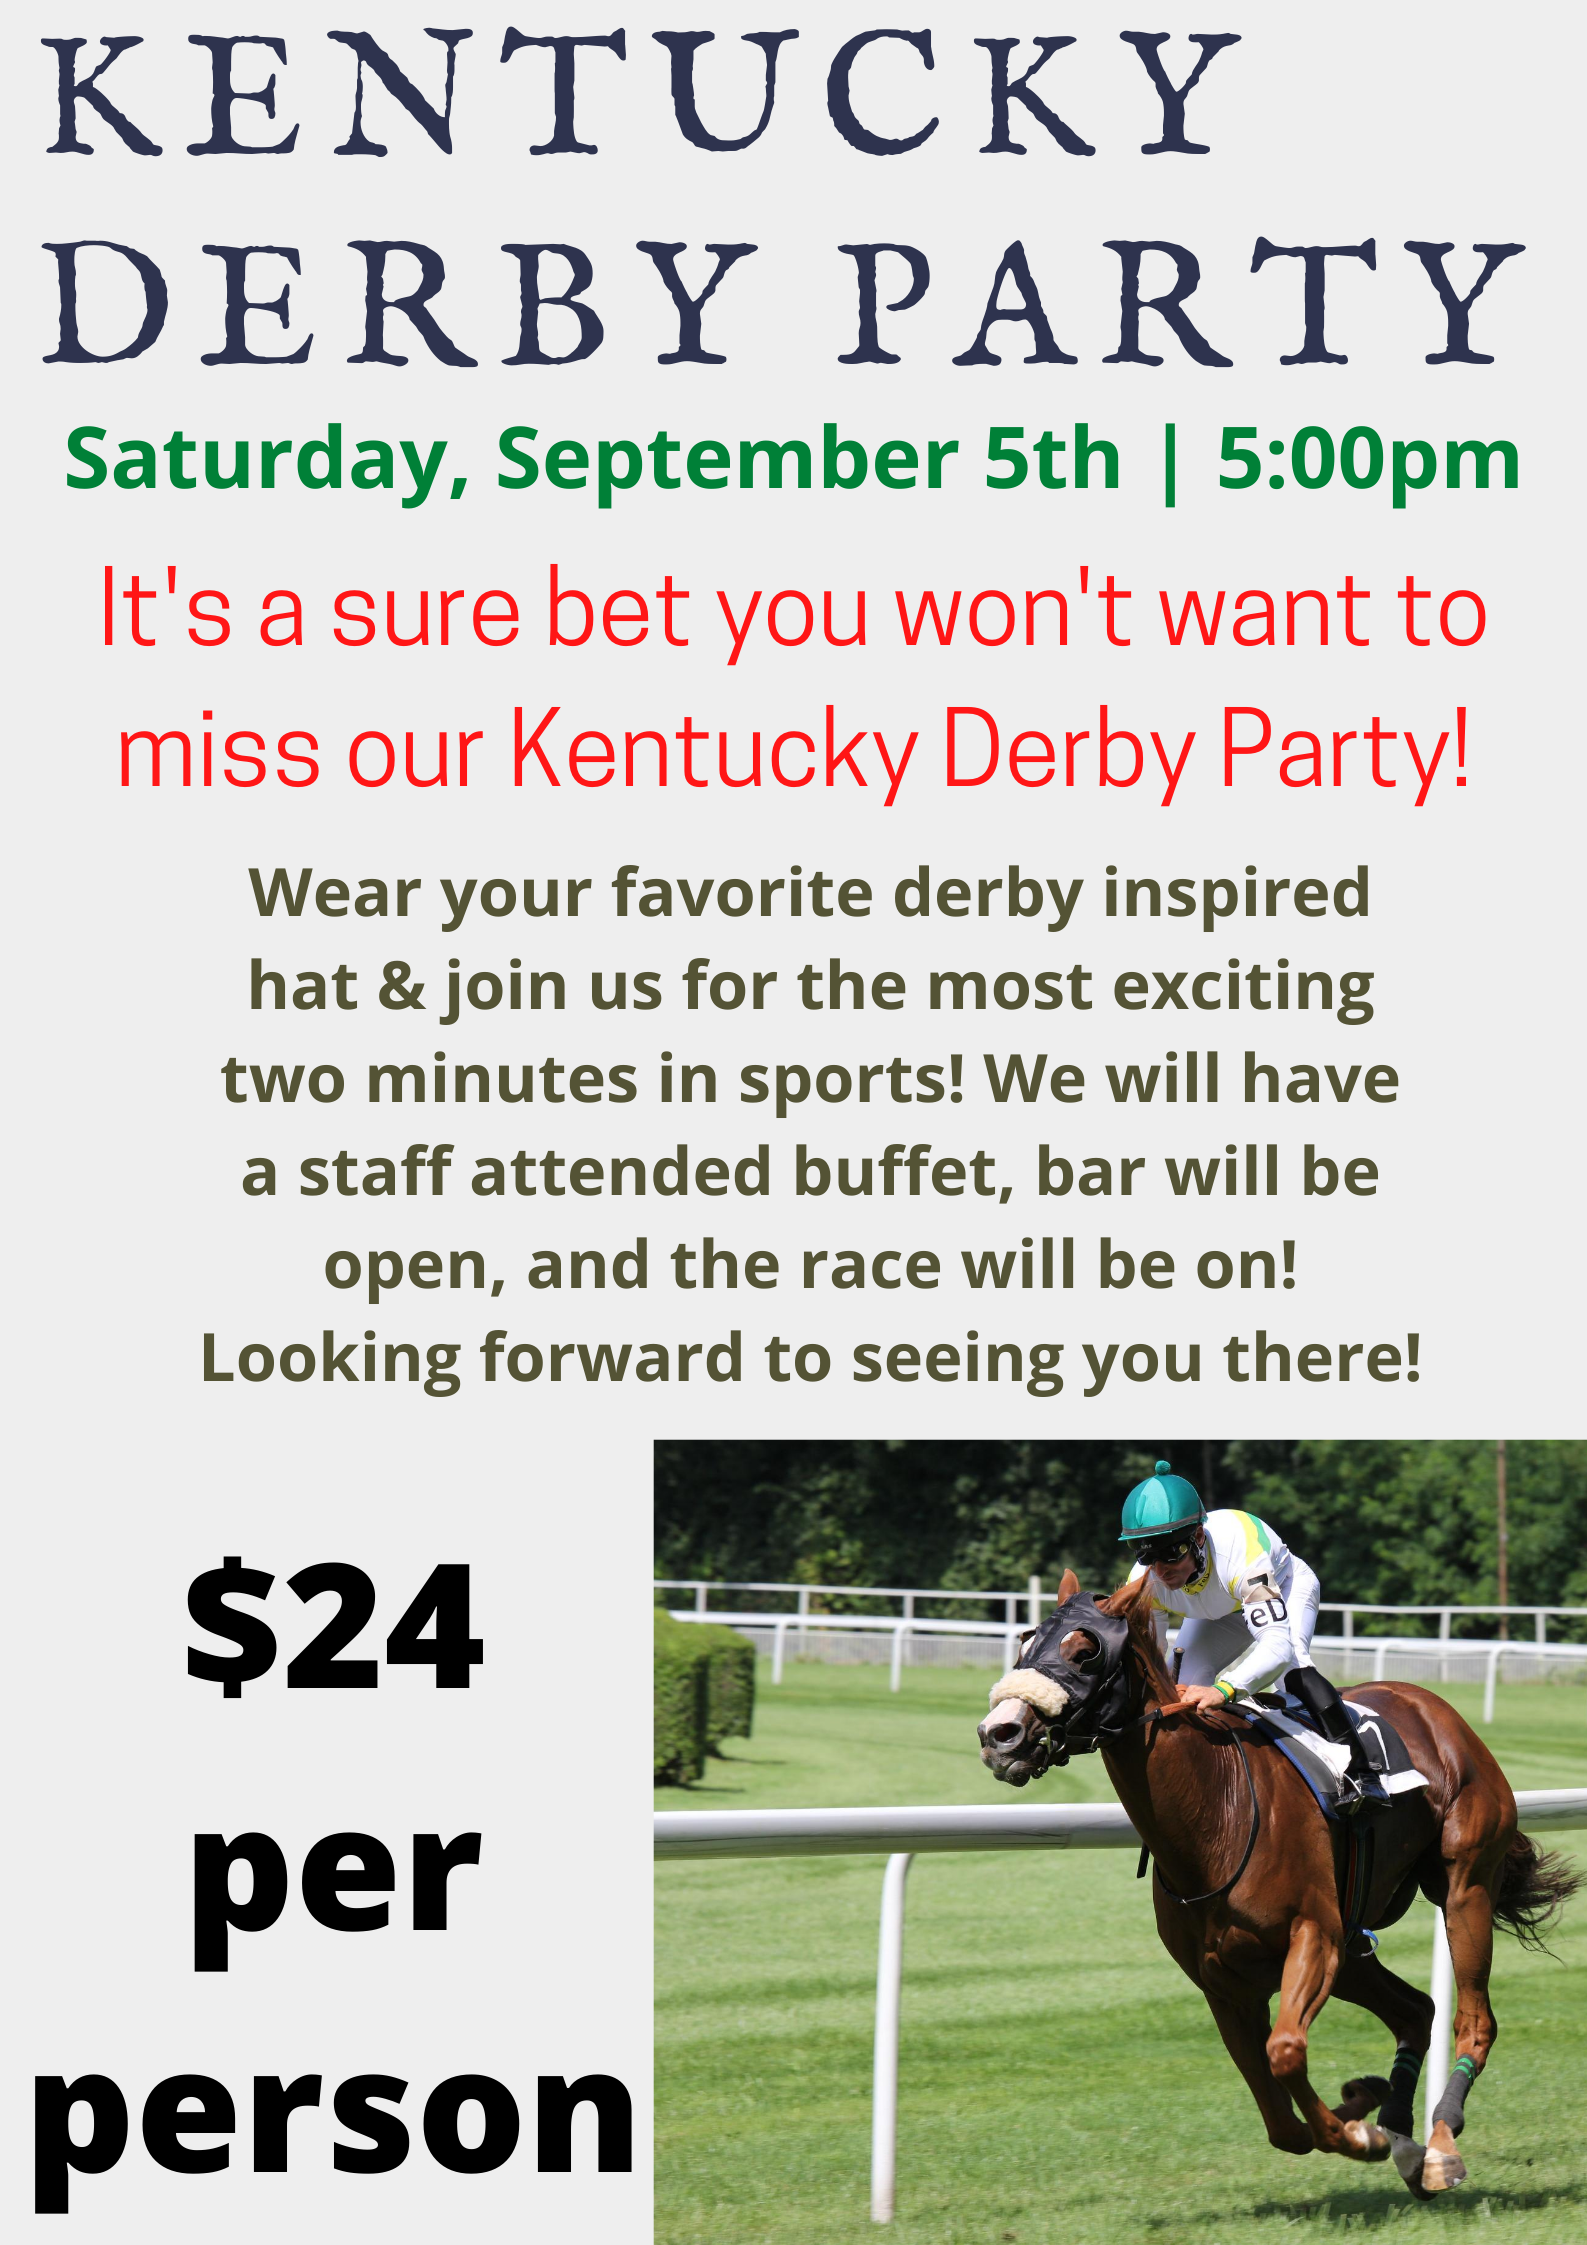 Kentucky Derby Party   Weymouth Country Club   25 25 25